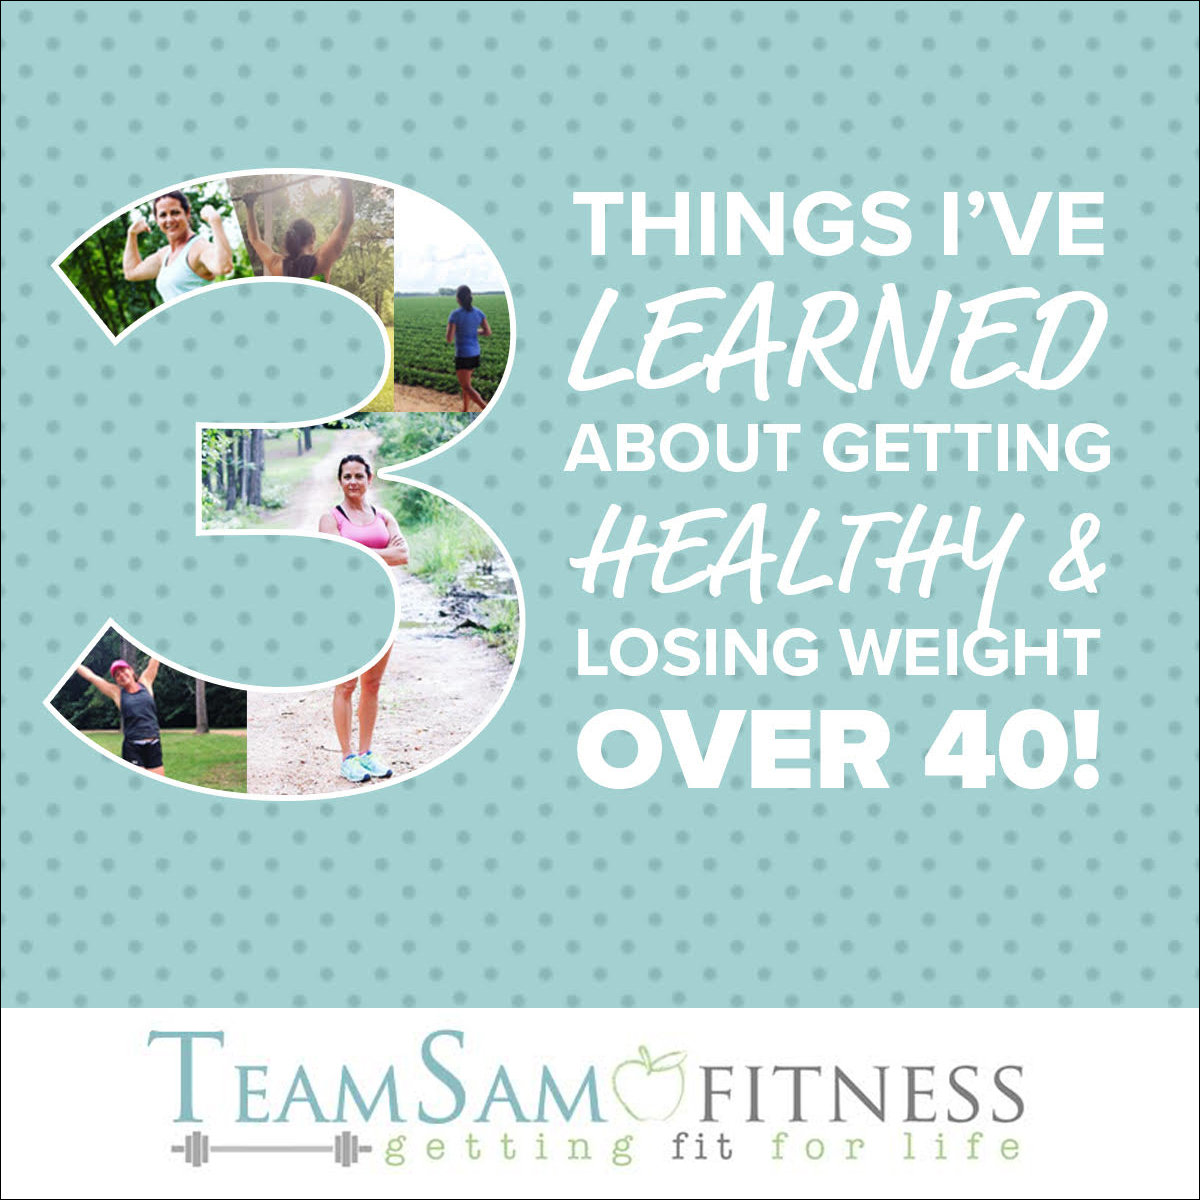 Lose Weight Over 40 by TeamSam Fitness